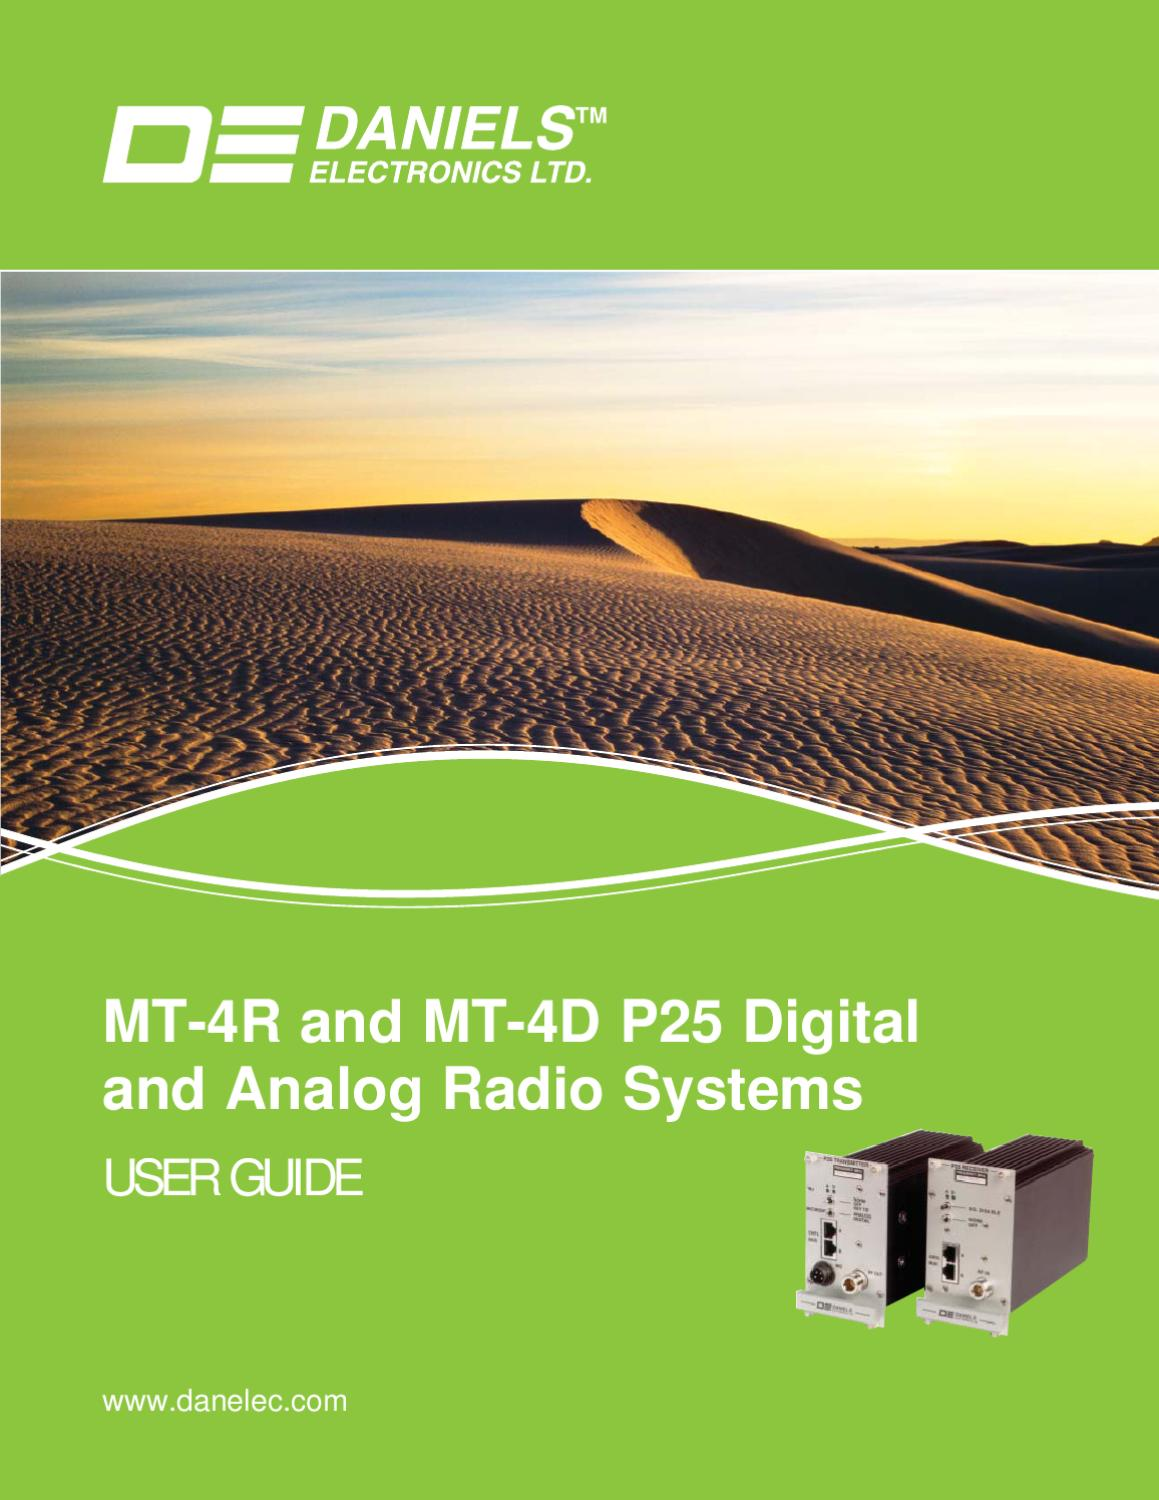 Daniels MT-4R and MT-4D P25 Digital and Analog Radio Systems